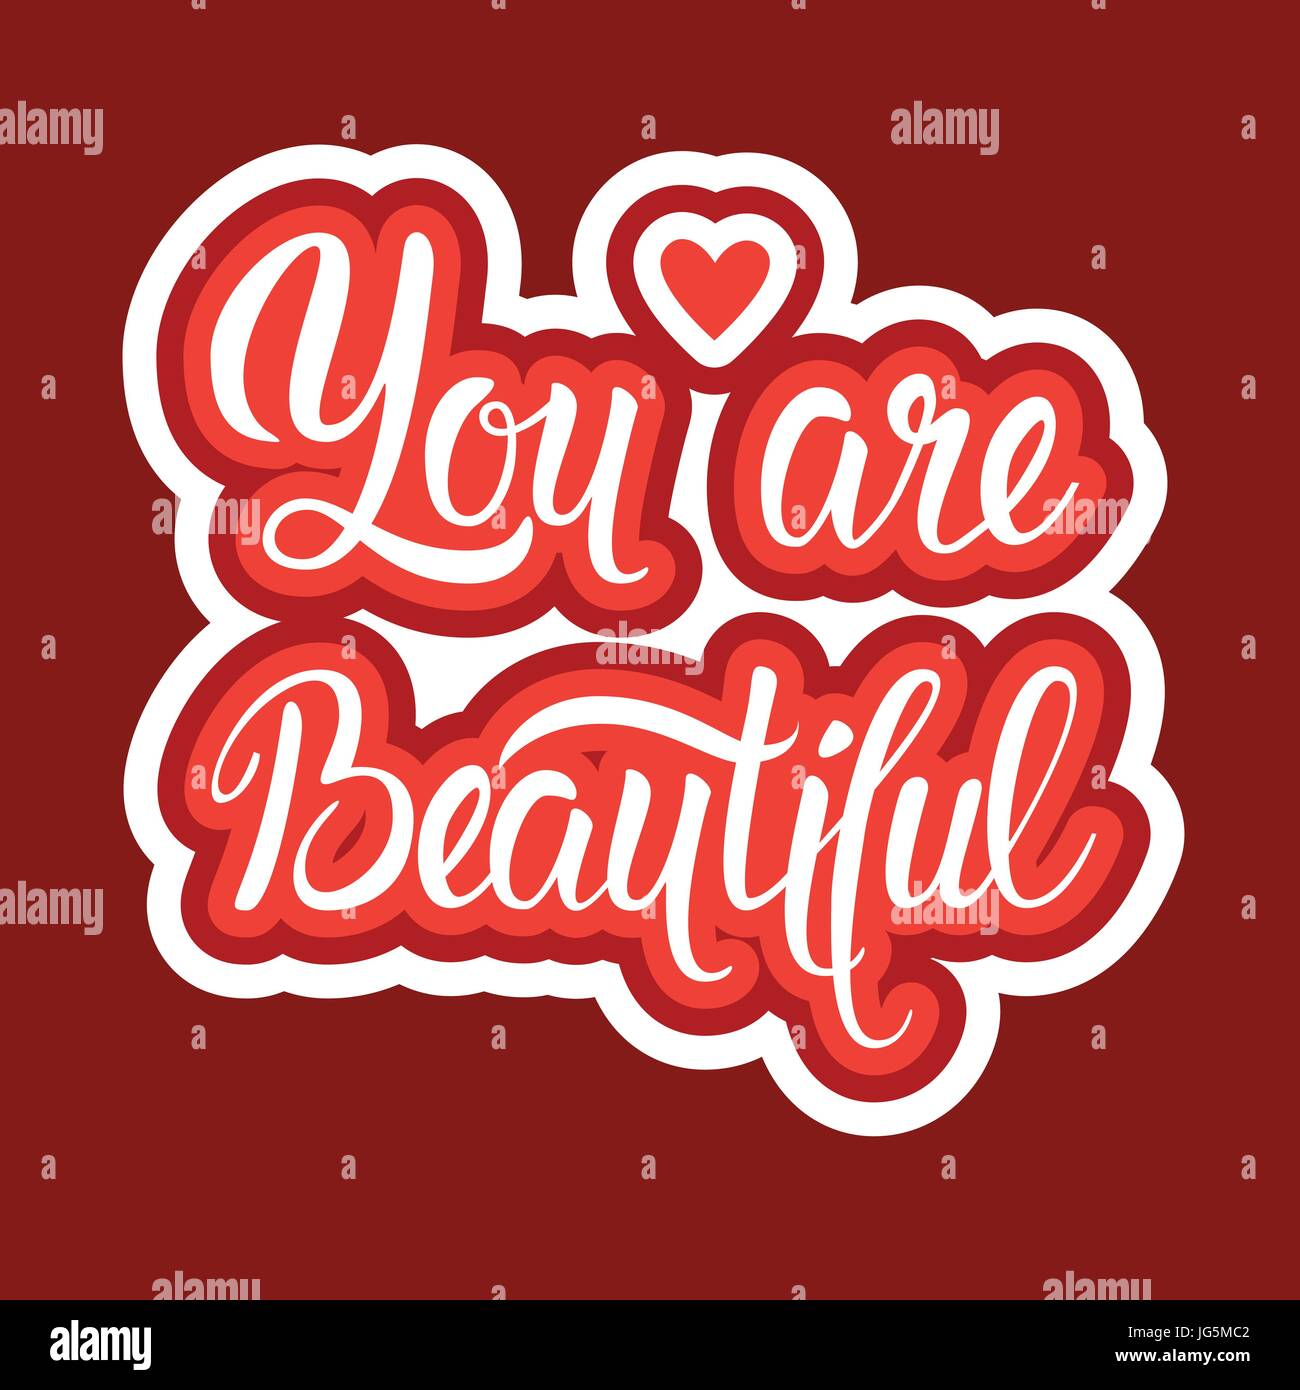 You are beautiful sticker social media network message badges design